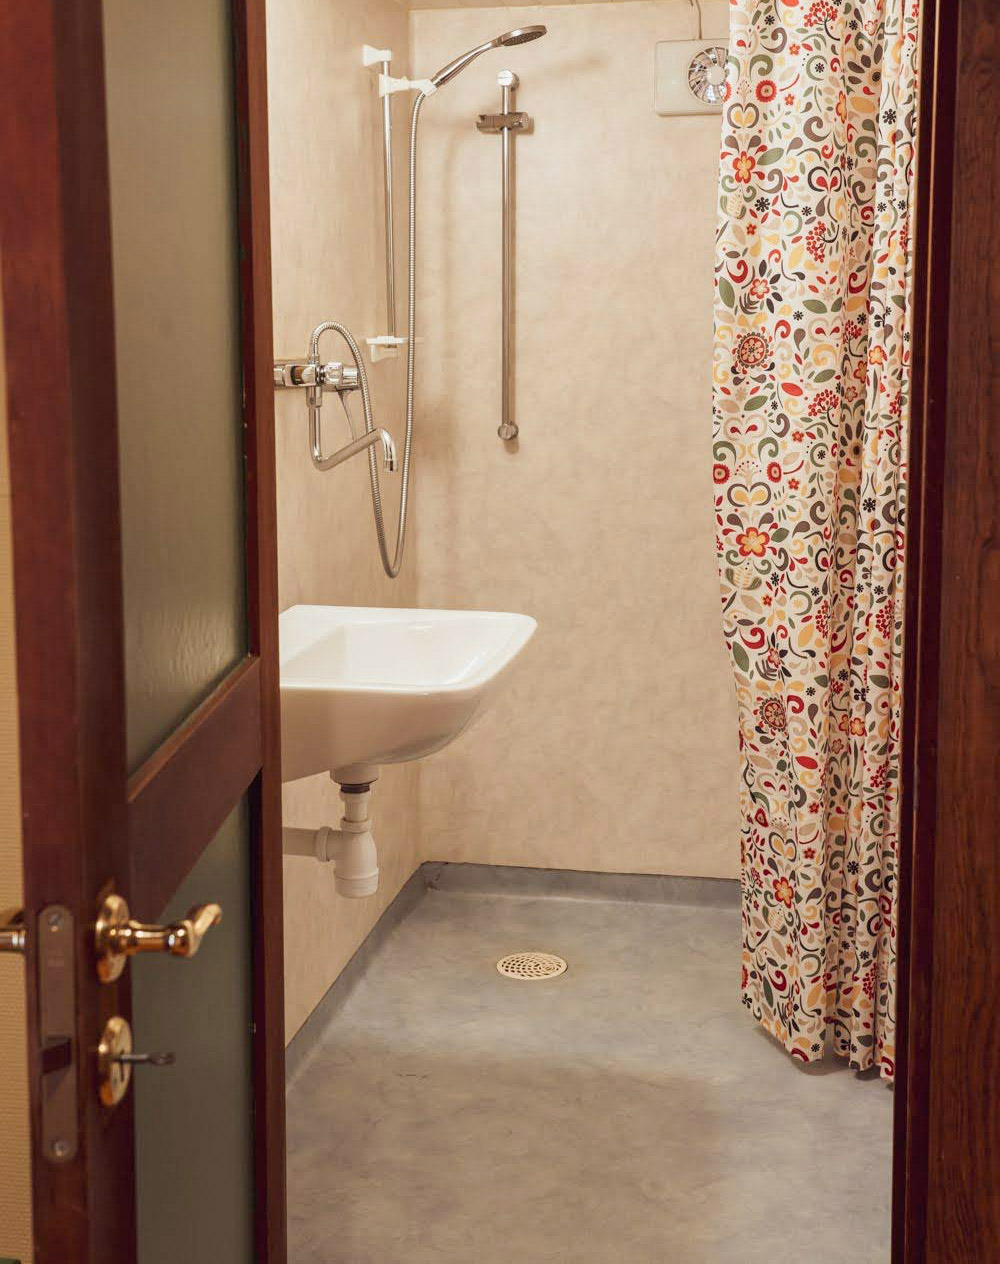 Since the shower and toilet are in separate rooms both can be used simultaneously by our guests.